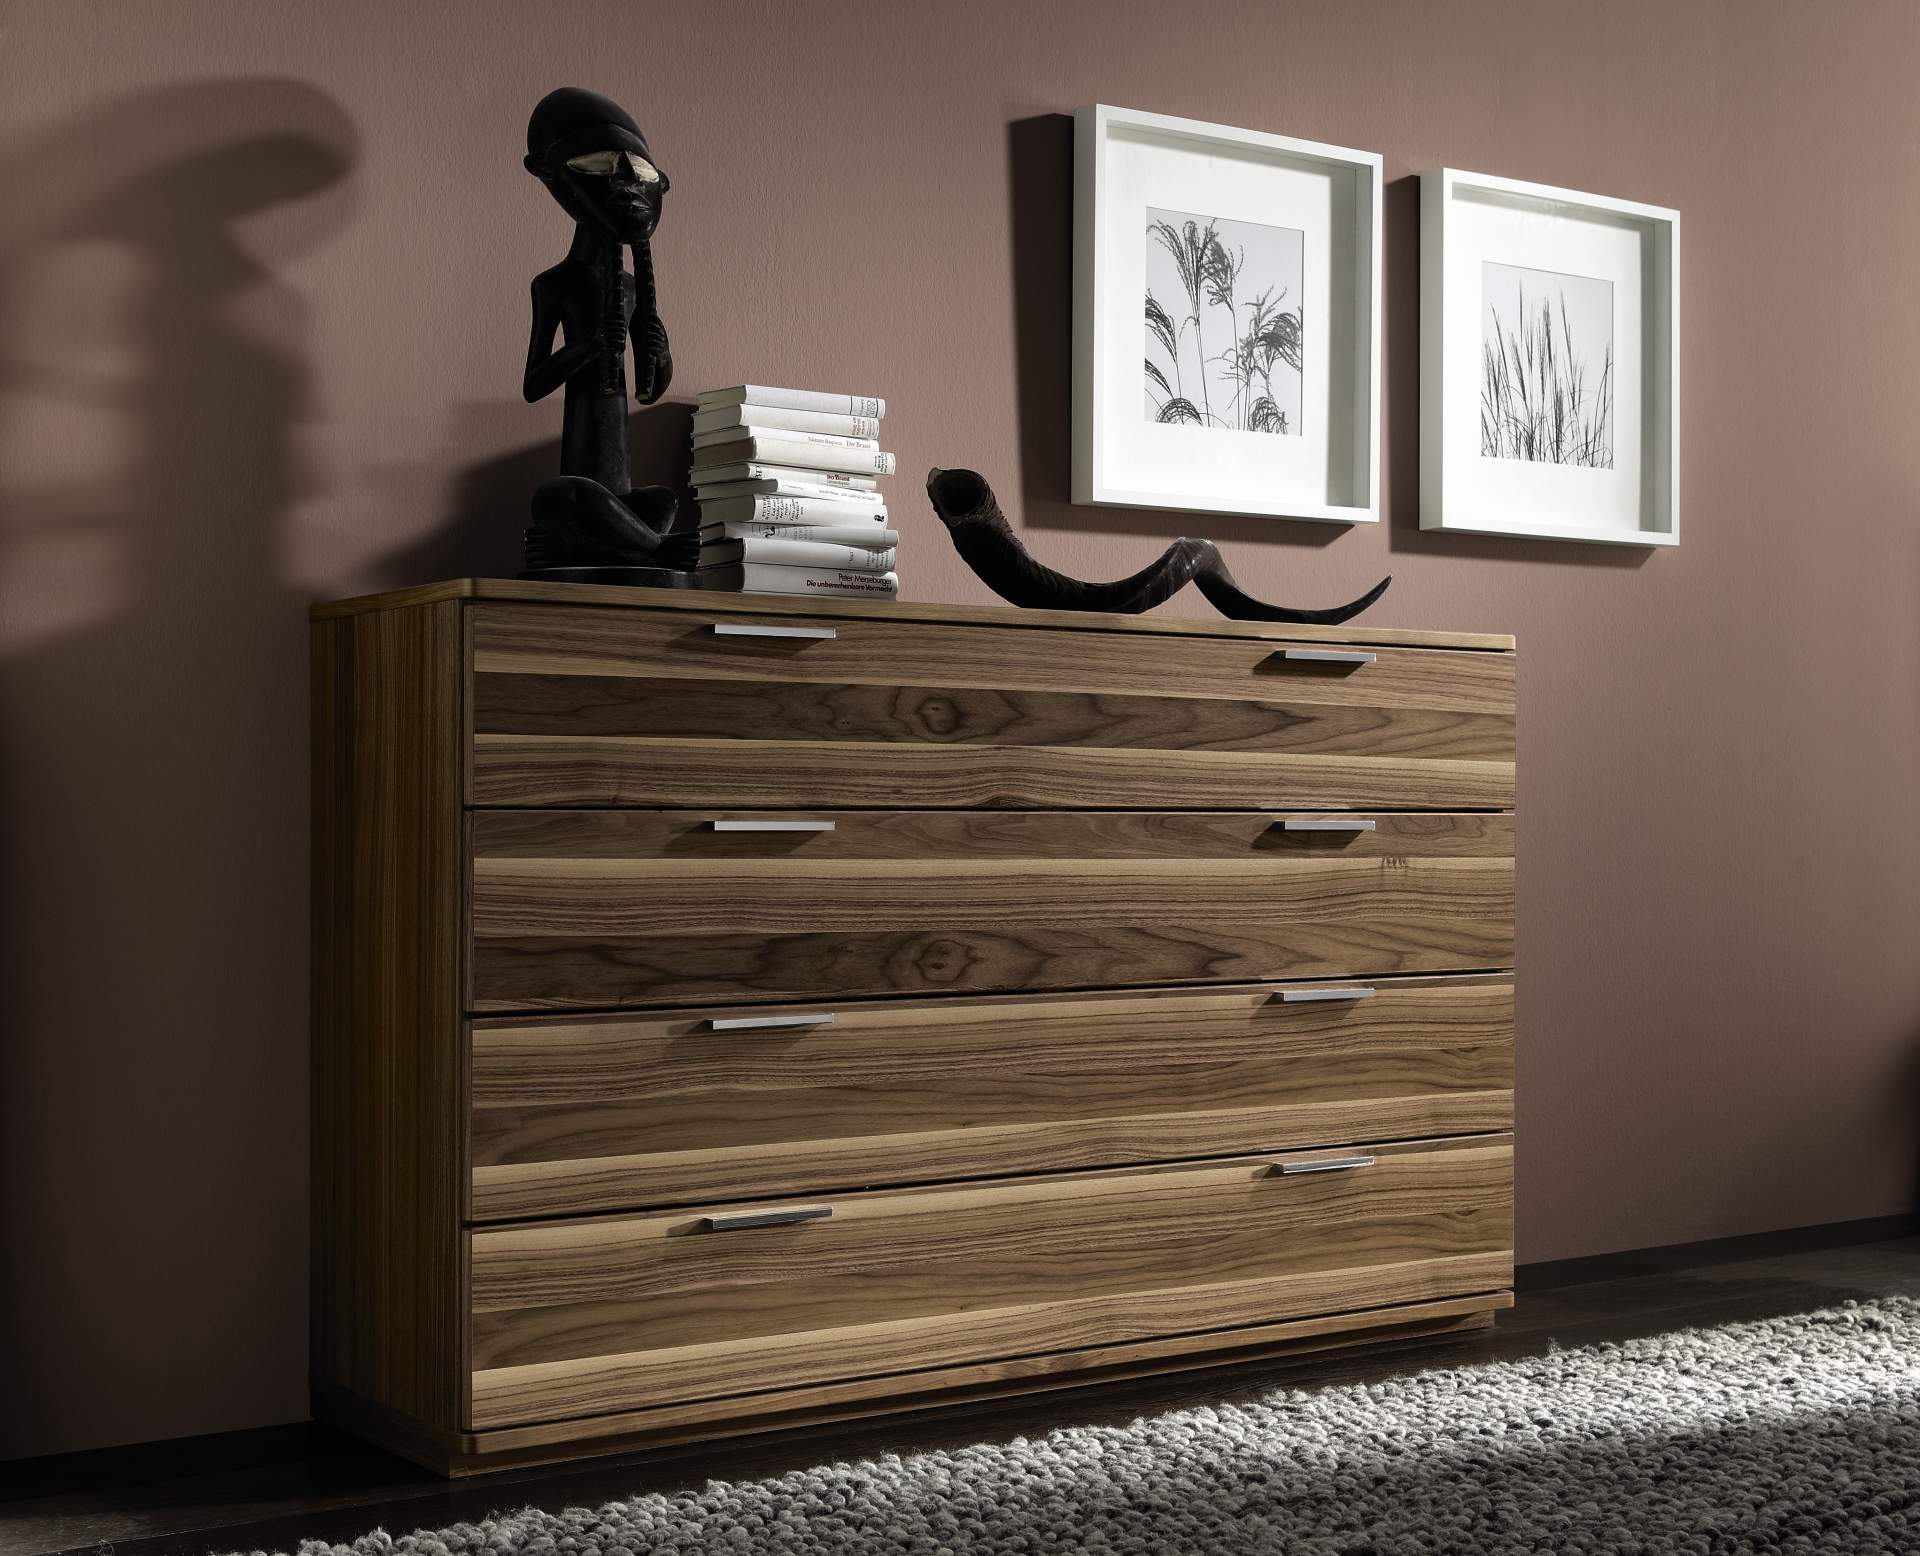 maxi moquette manosque trendy image may contain night and. Black Bedroom Furniture Sets. Home Design Ideas